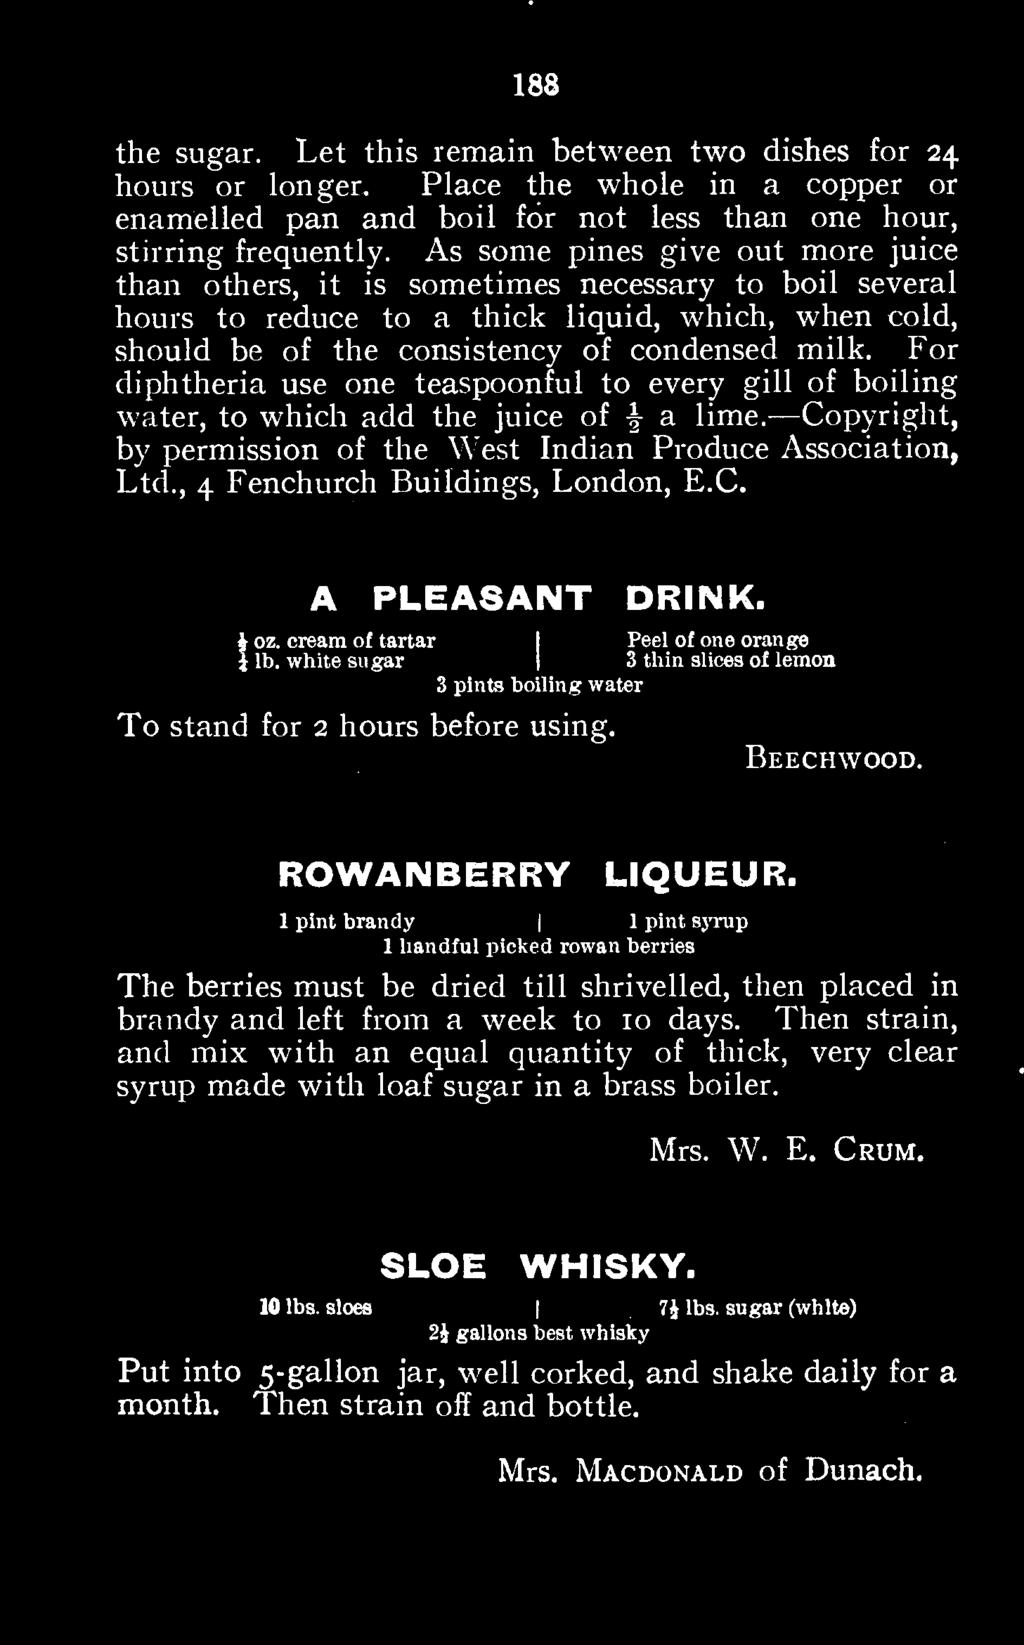 Beechwood. ROWANBERRY LIQUEUR. 1 pint brandy 1 handful picked rowan berries 1 pint syrup The berries must be dried till shrivelled, then placed in brandy and left from a week to 10 days.